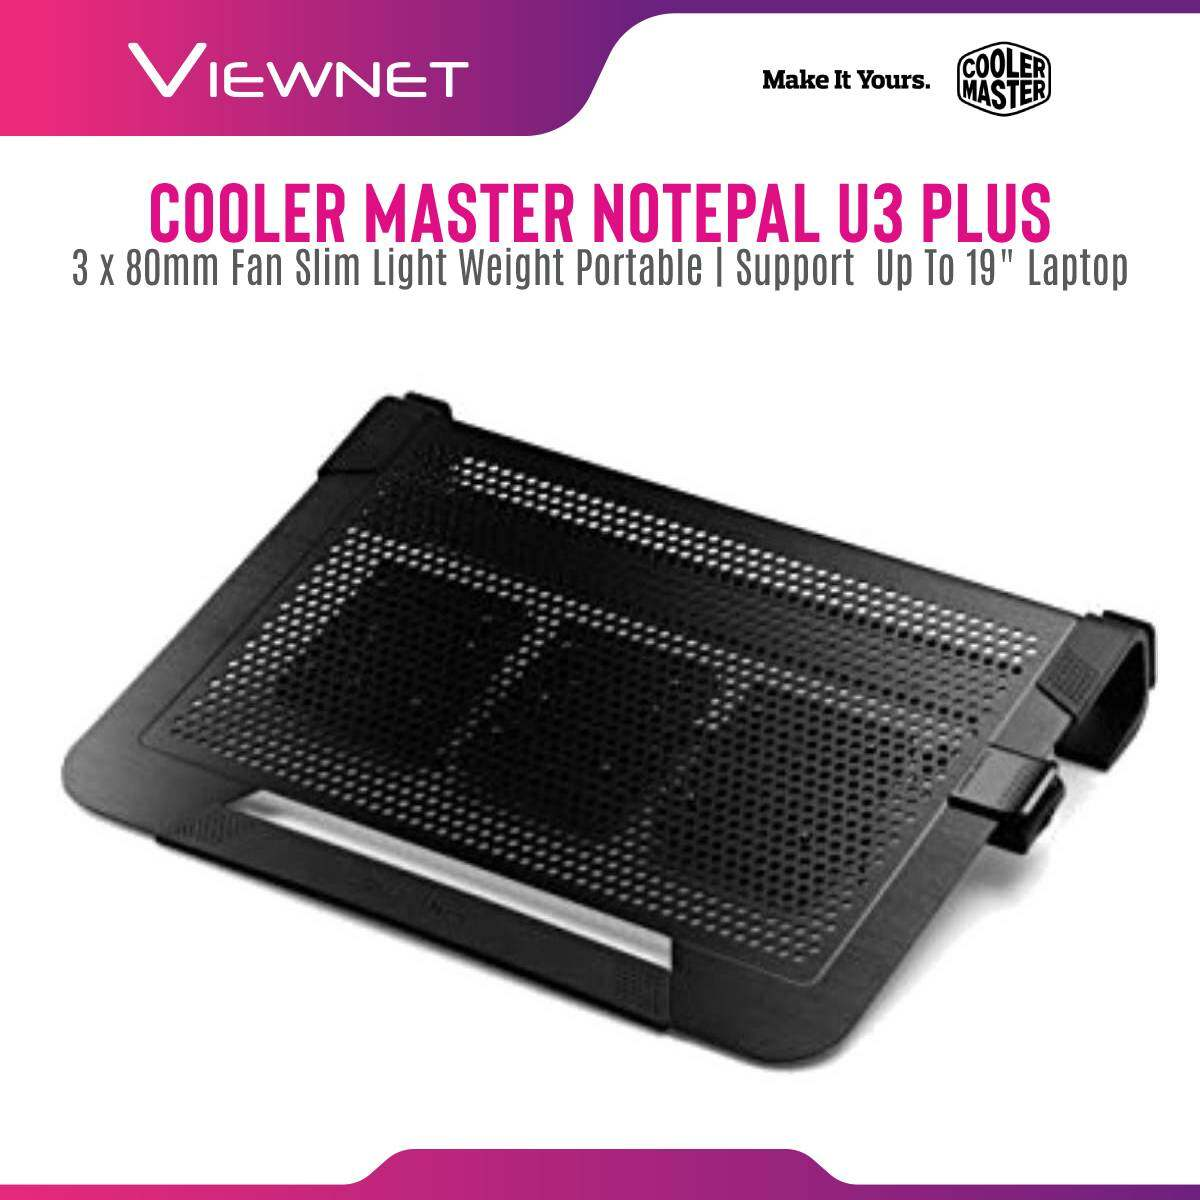 Cooler Master Notepal U3 PLUS 3 x 80mm Fan Slim Light Weight Portable Mesh USB 2.0 Notebook Cooler for up to 19